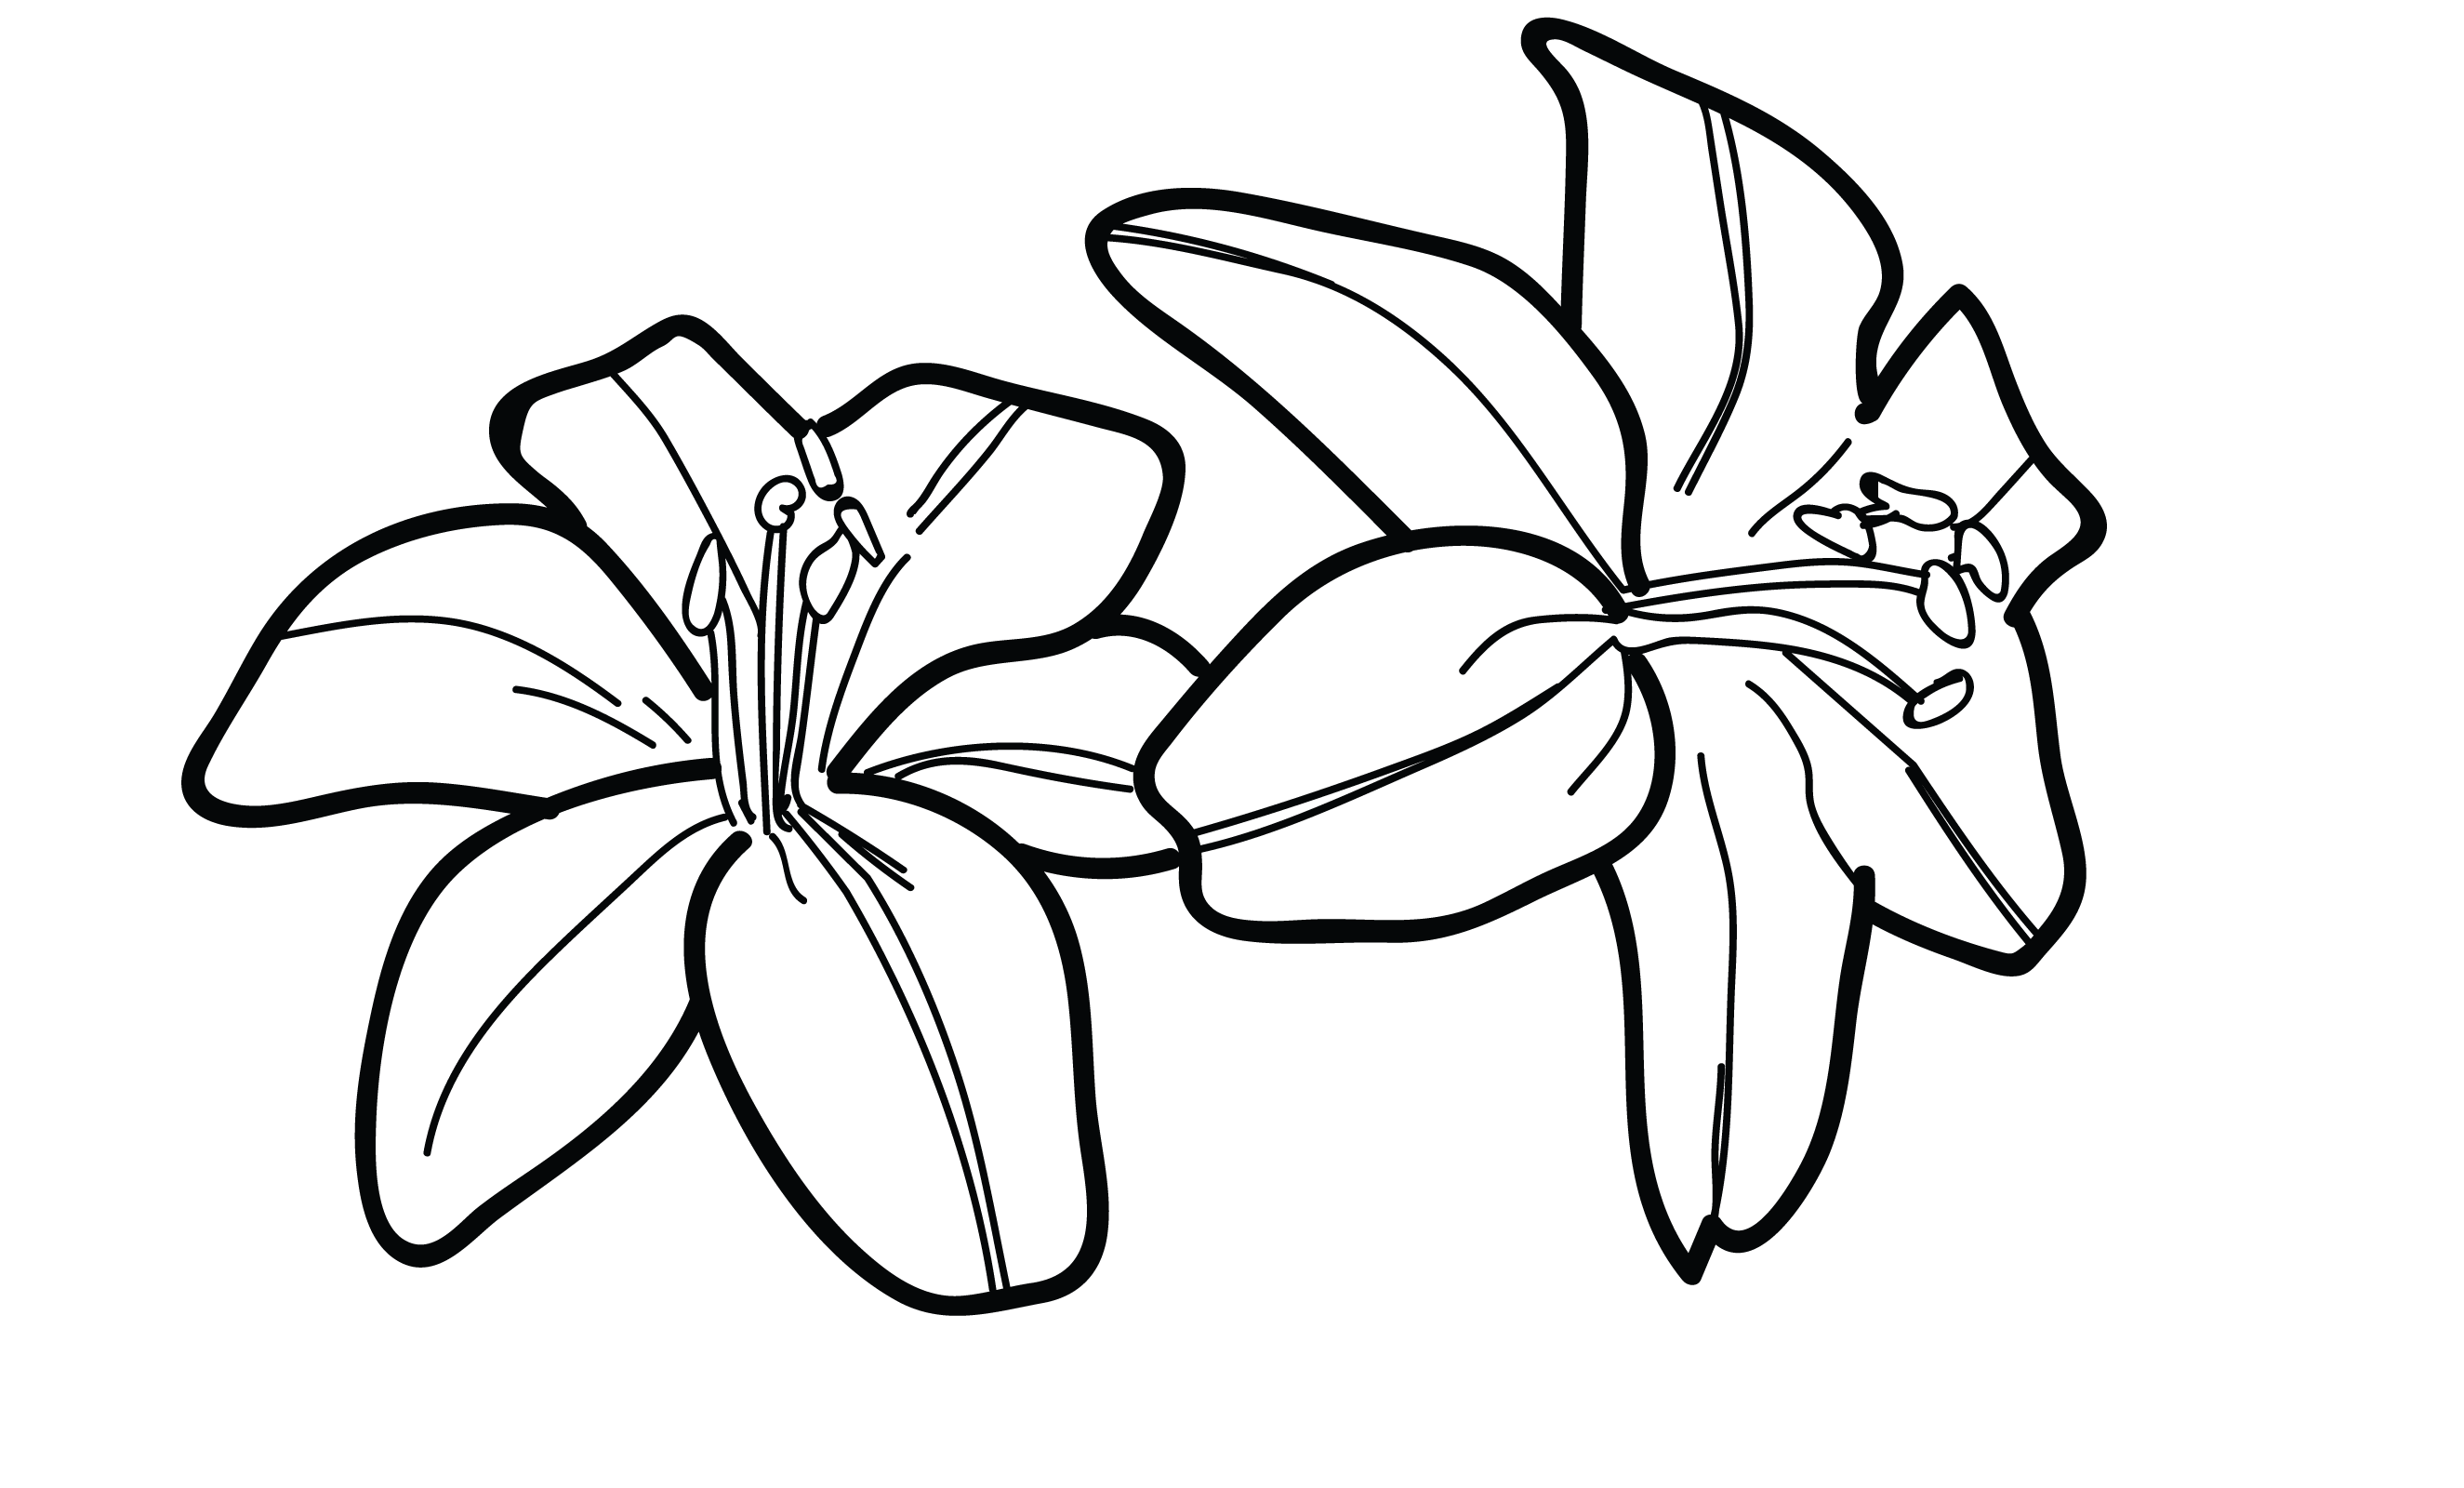 Lily pad flower clipart black and white royalty free download Black And White Lily Drawing at GetDrawings.com | Free for personal ... royalty free download